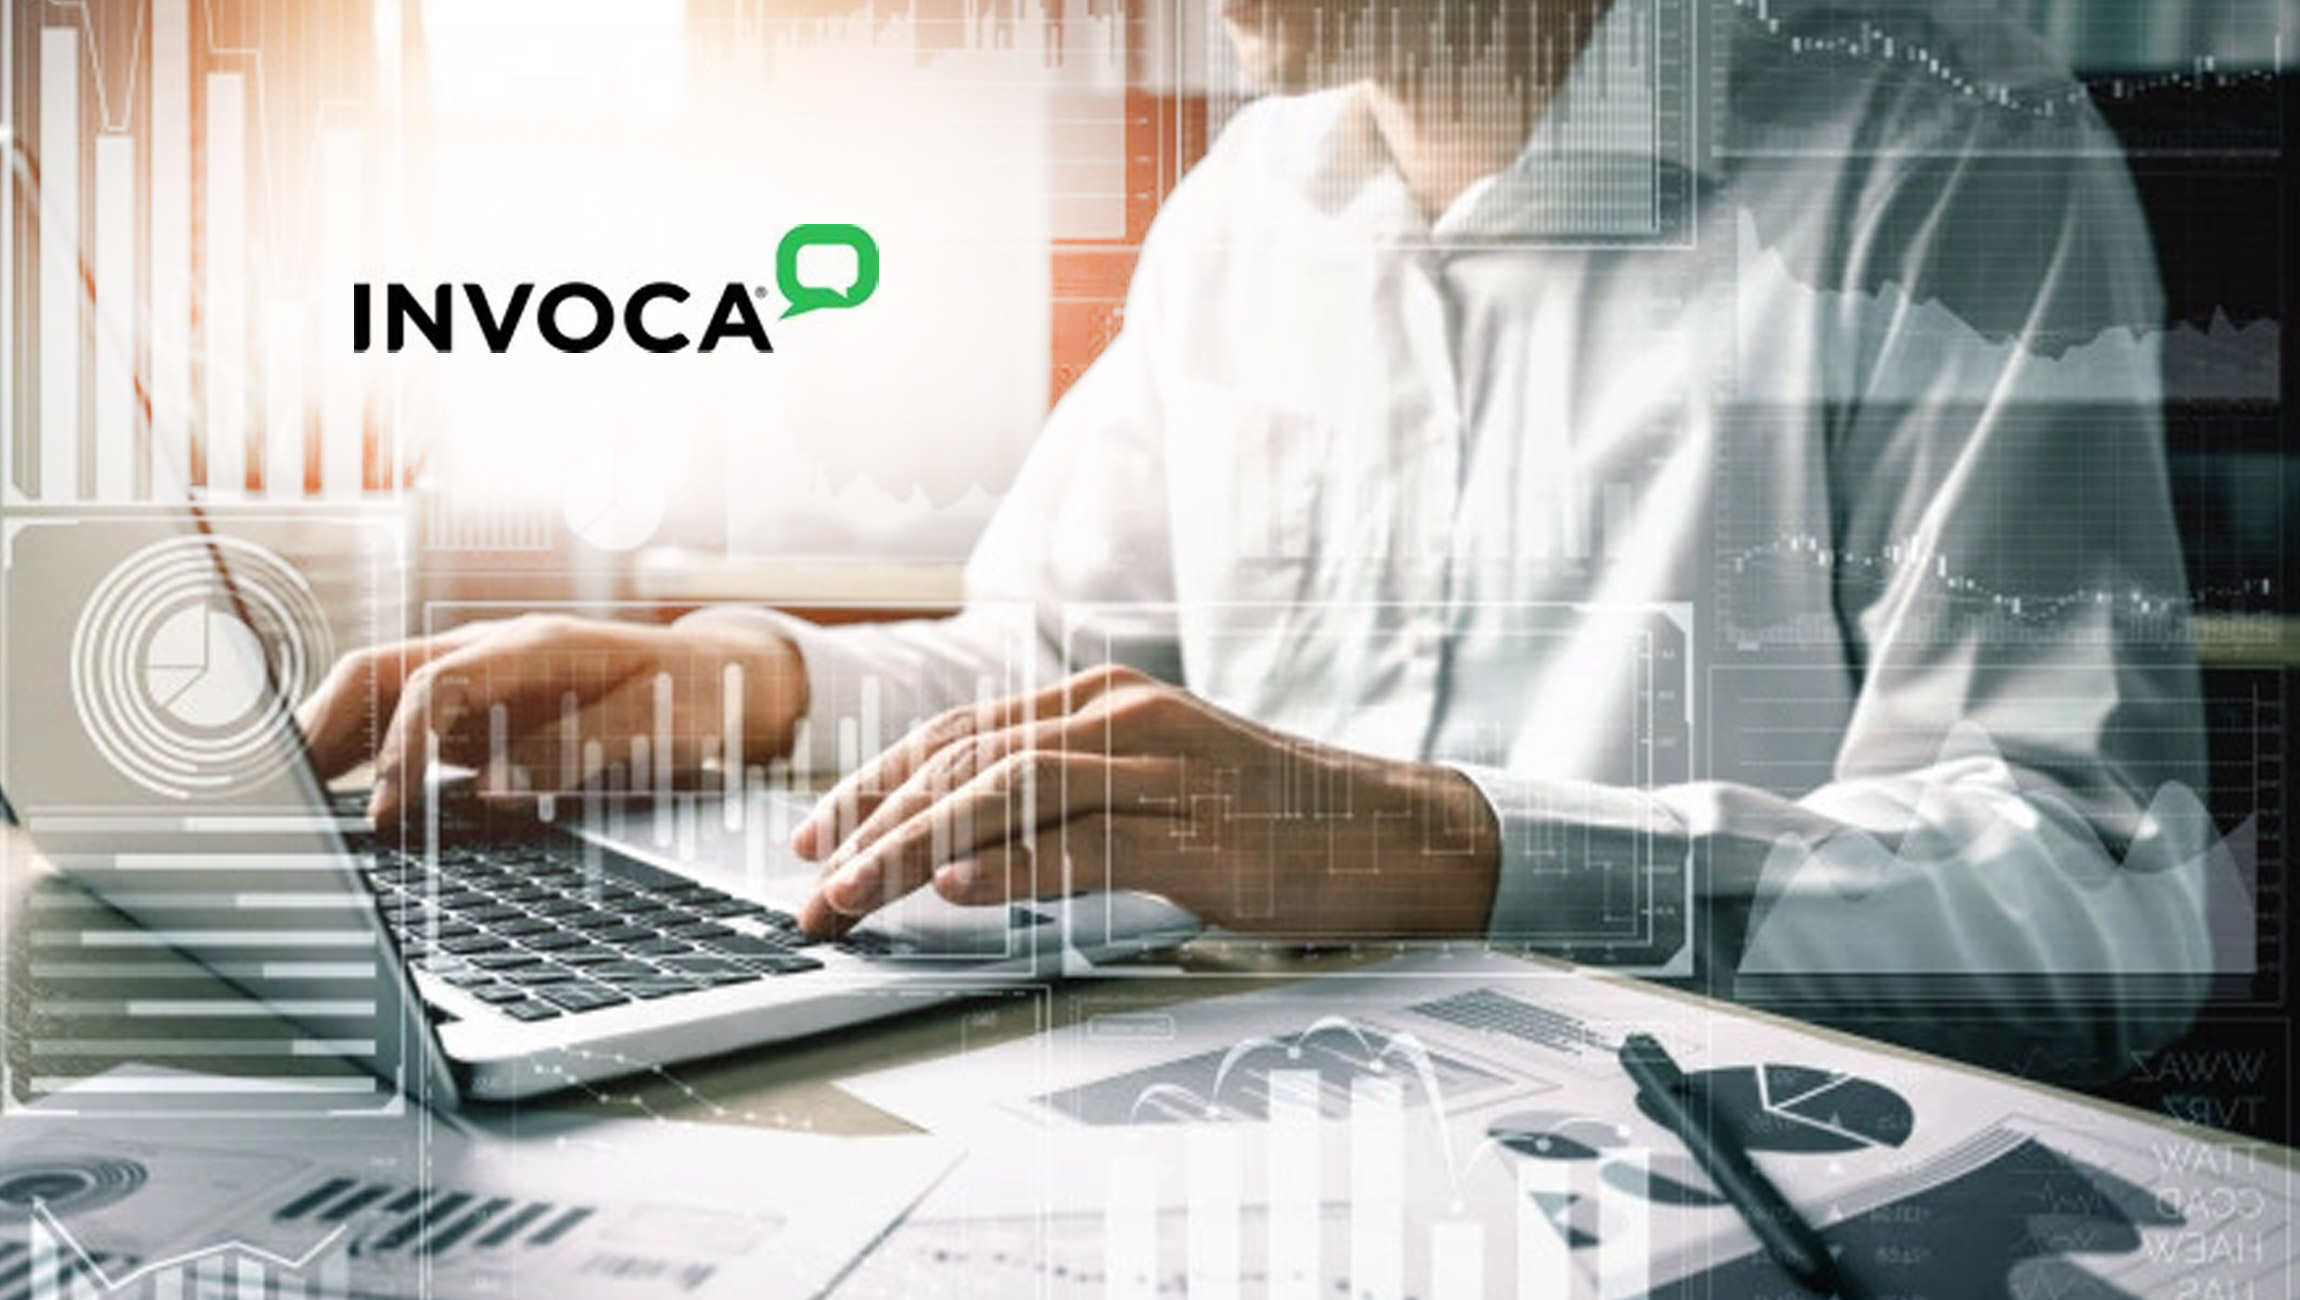 Invoca Named a Leader in Conversation Intelligence: Sales And Marketing Report by Independent Research Firm